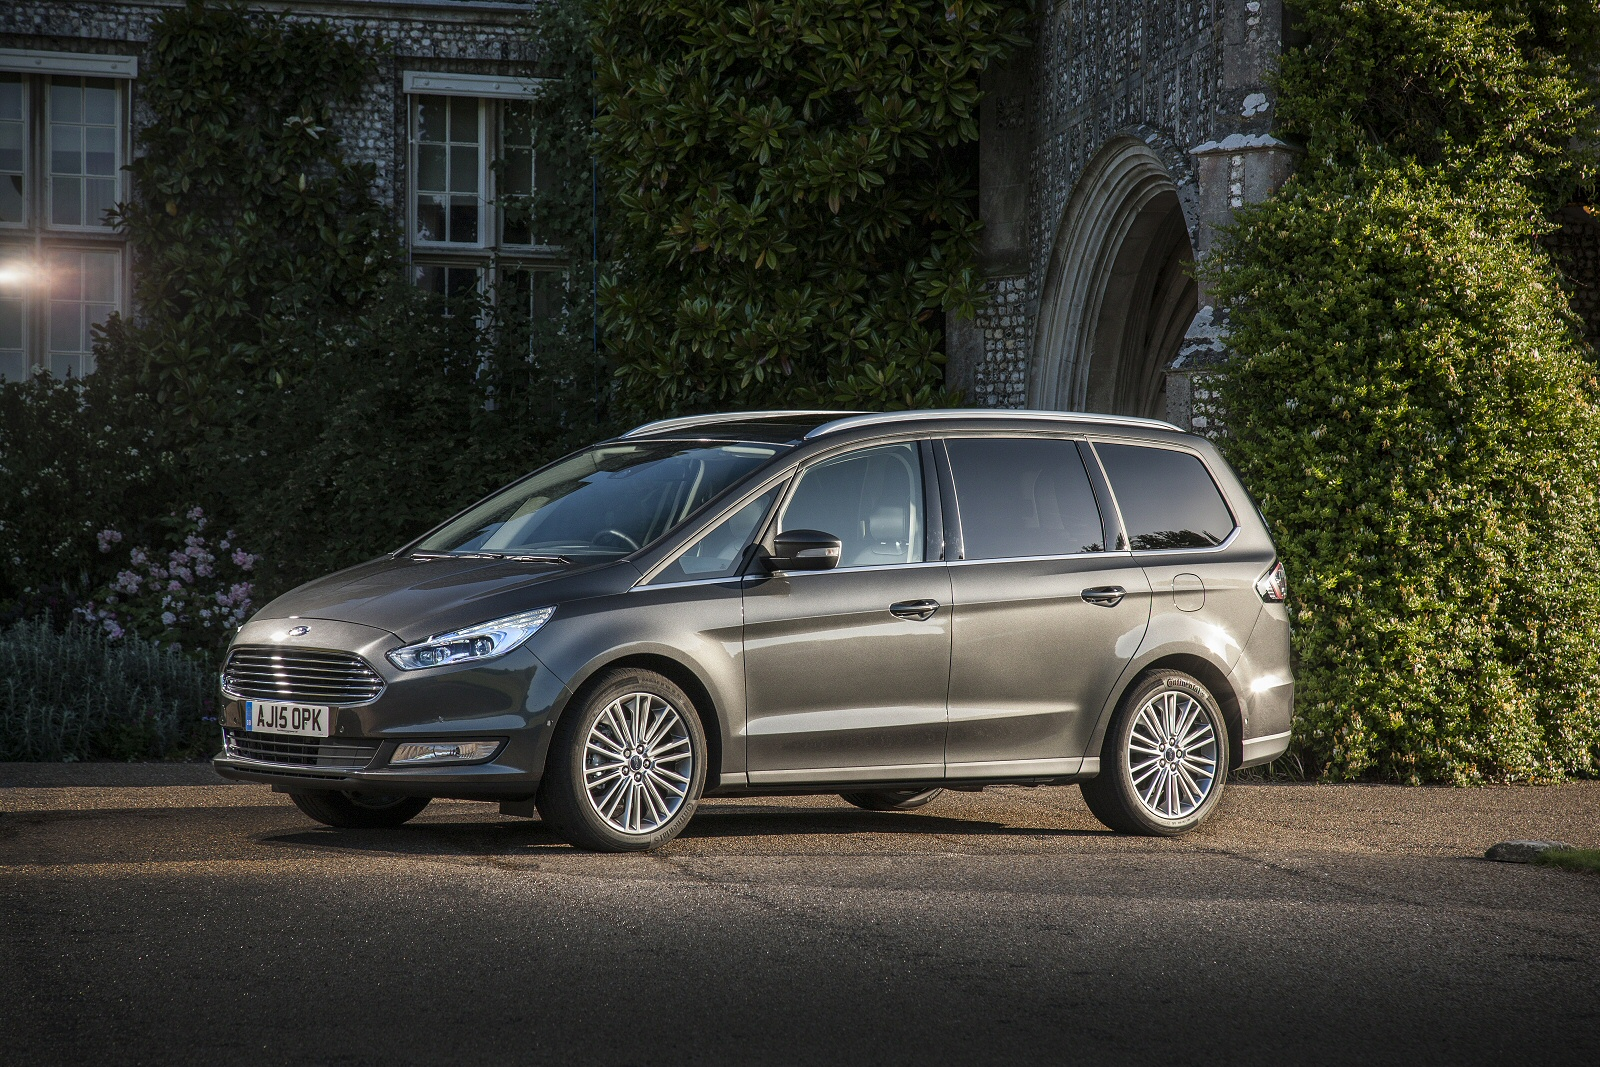 new ford galaxy 2 0 tdci 180 titanium x 5dr powershift awd diesel estate for sale bristol street. Black Bedroom Furniture Sets. Home Design Ideas